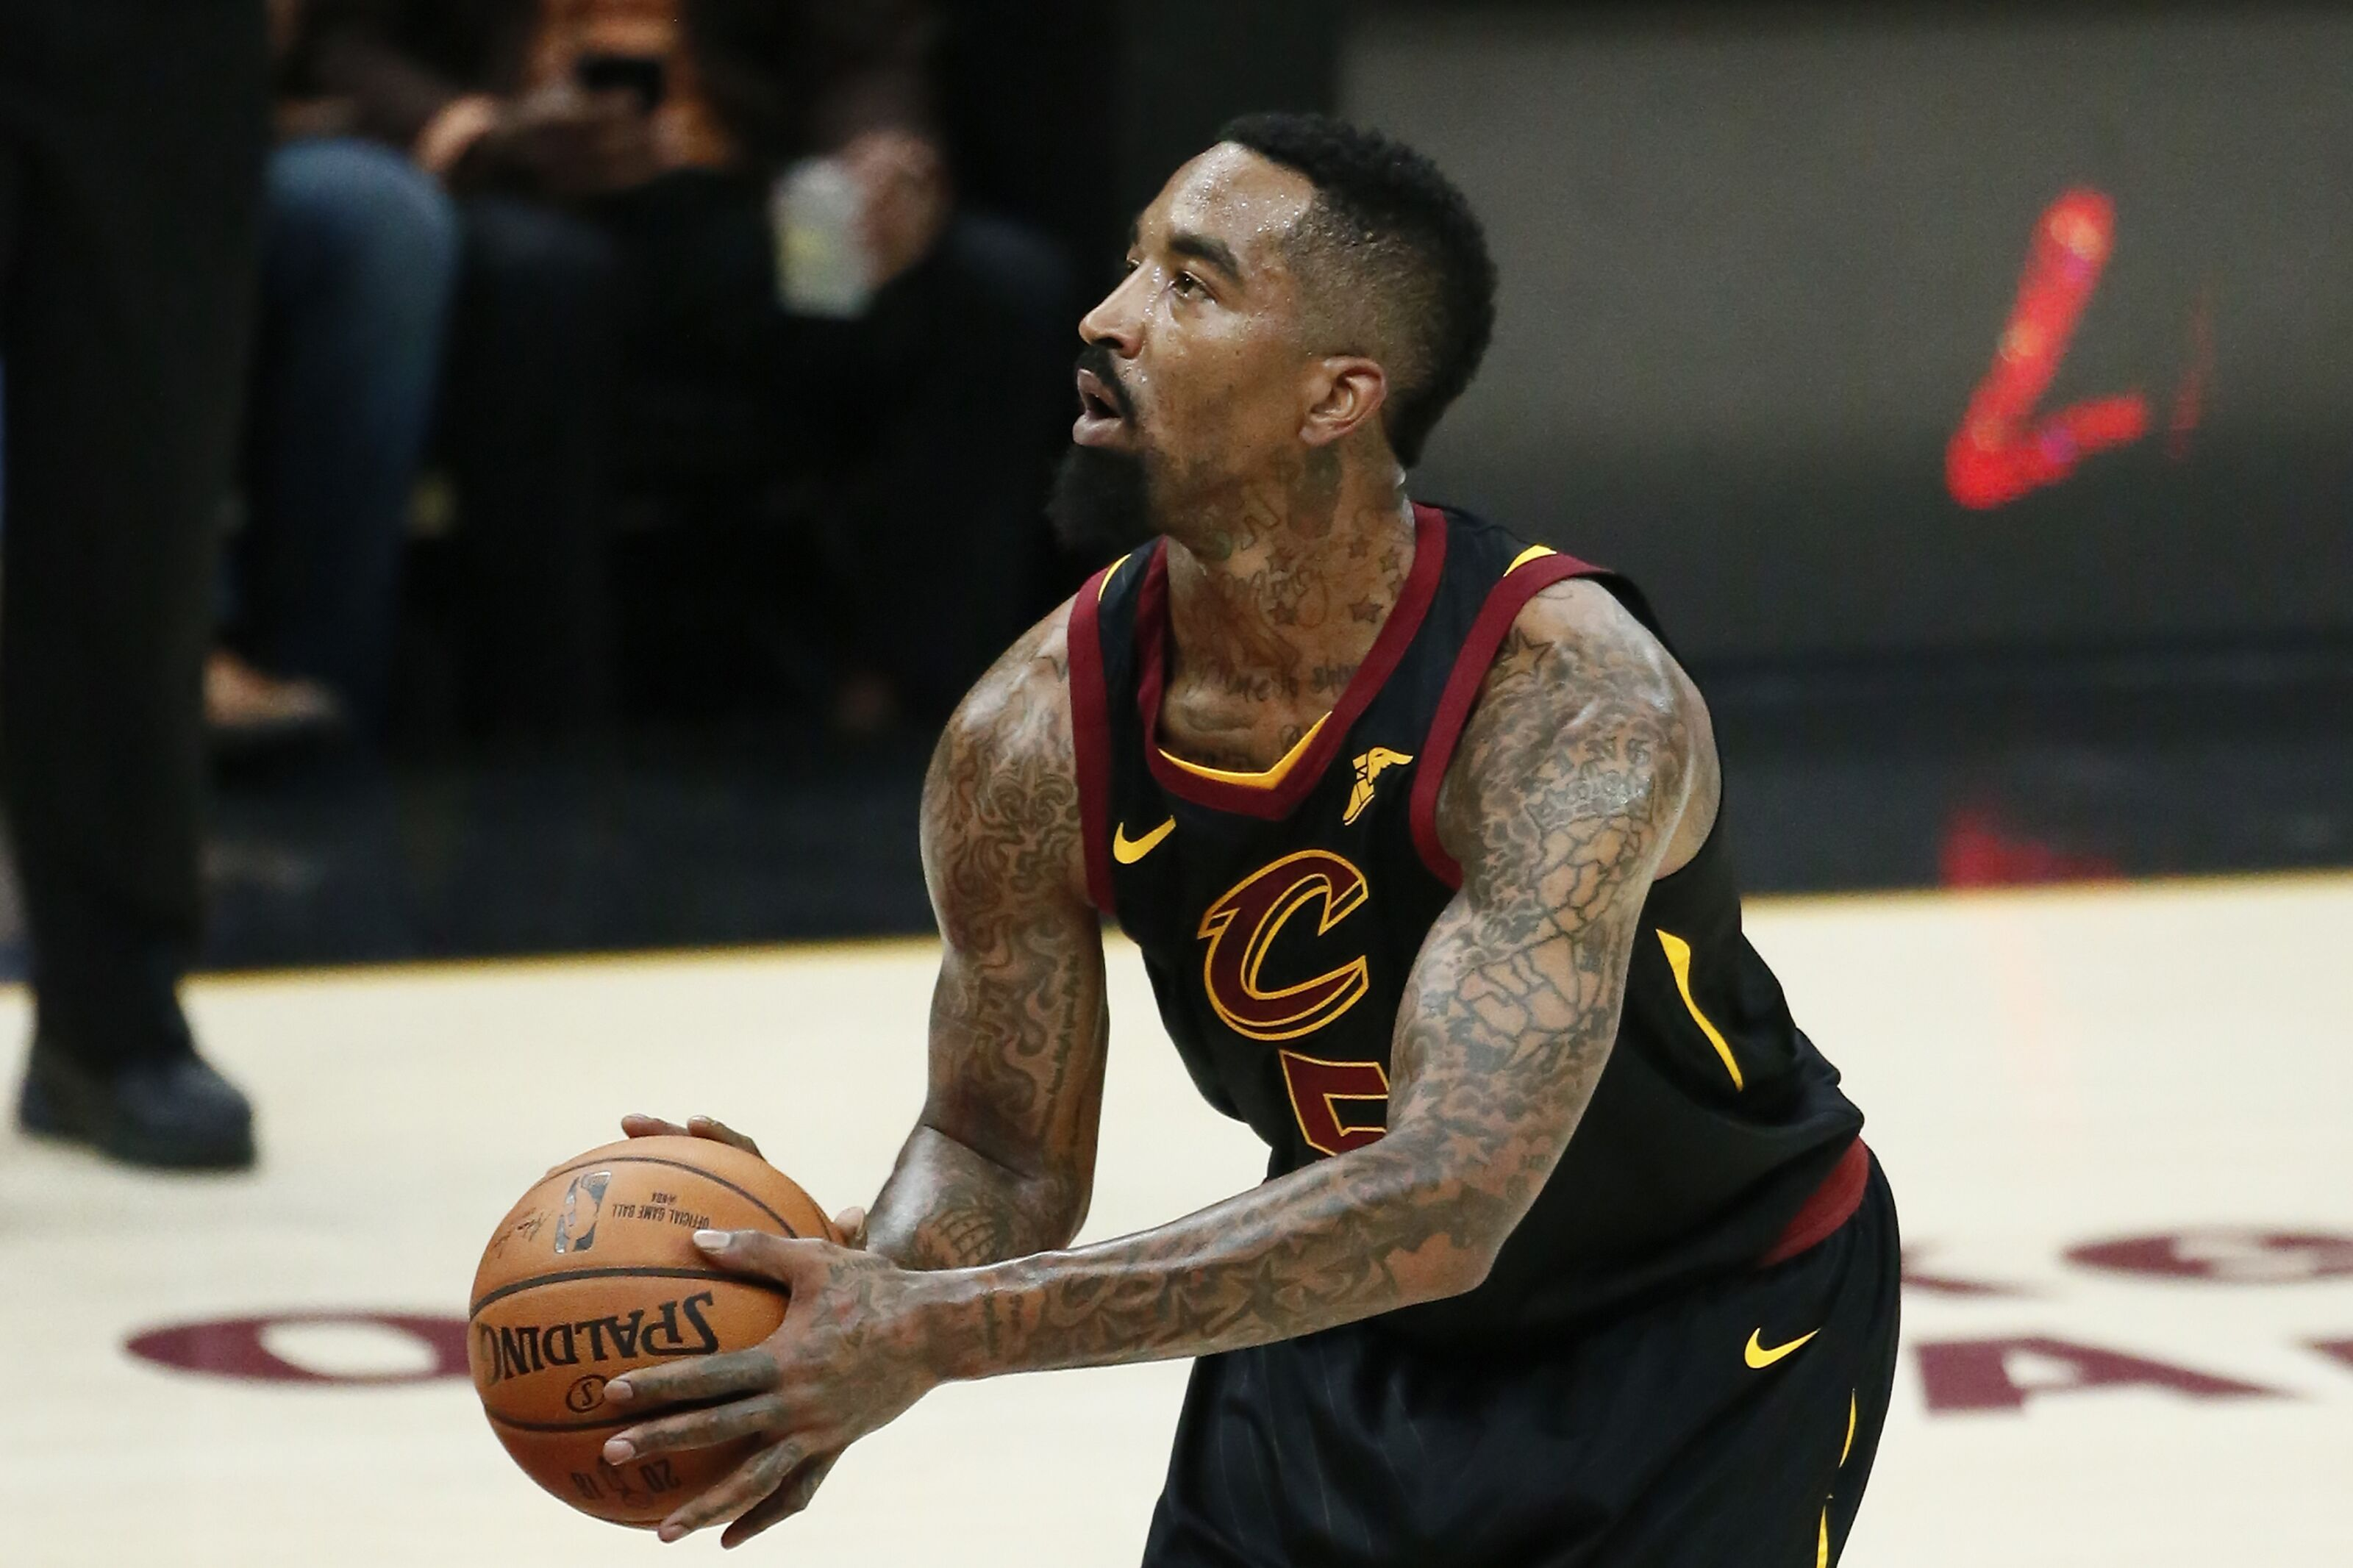 Cleveland Cavaliers  J.R. Smith has moved on from Finals Game 1 gaffe 744a24125